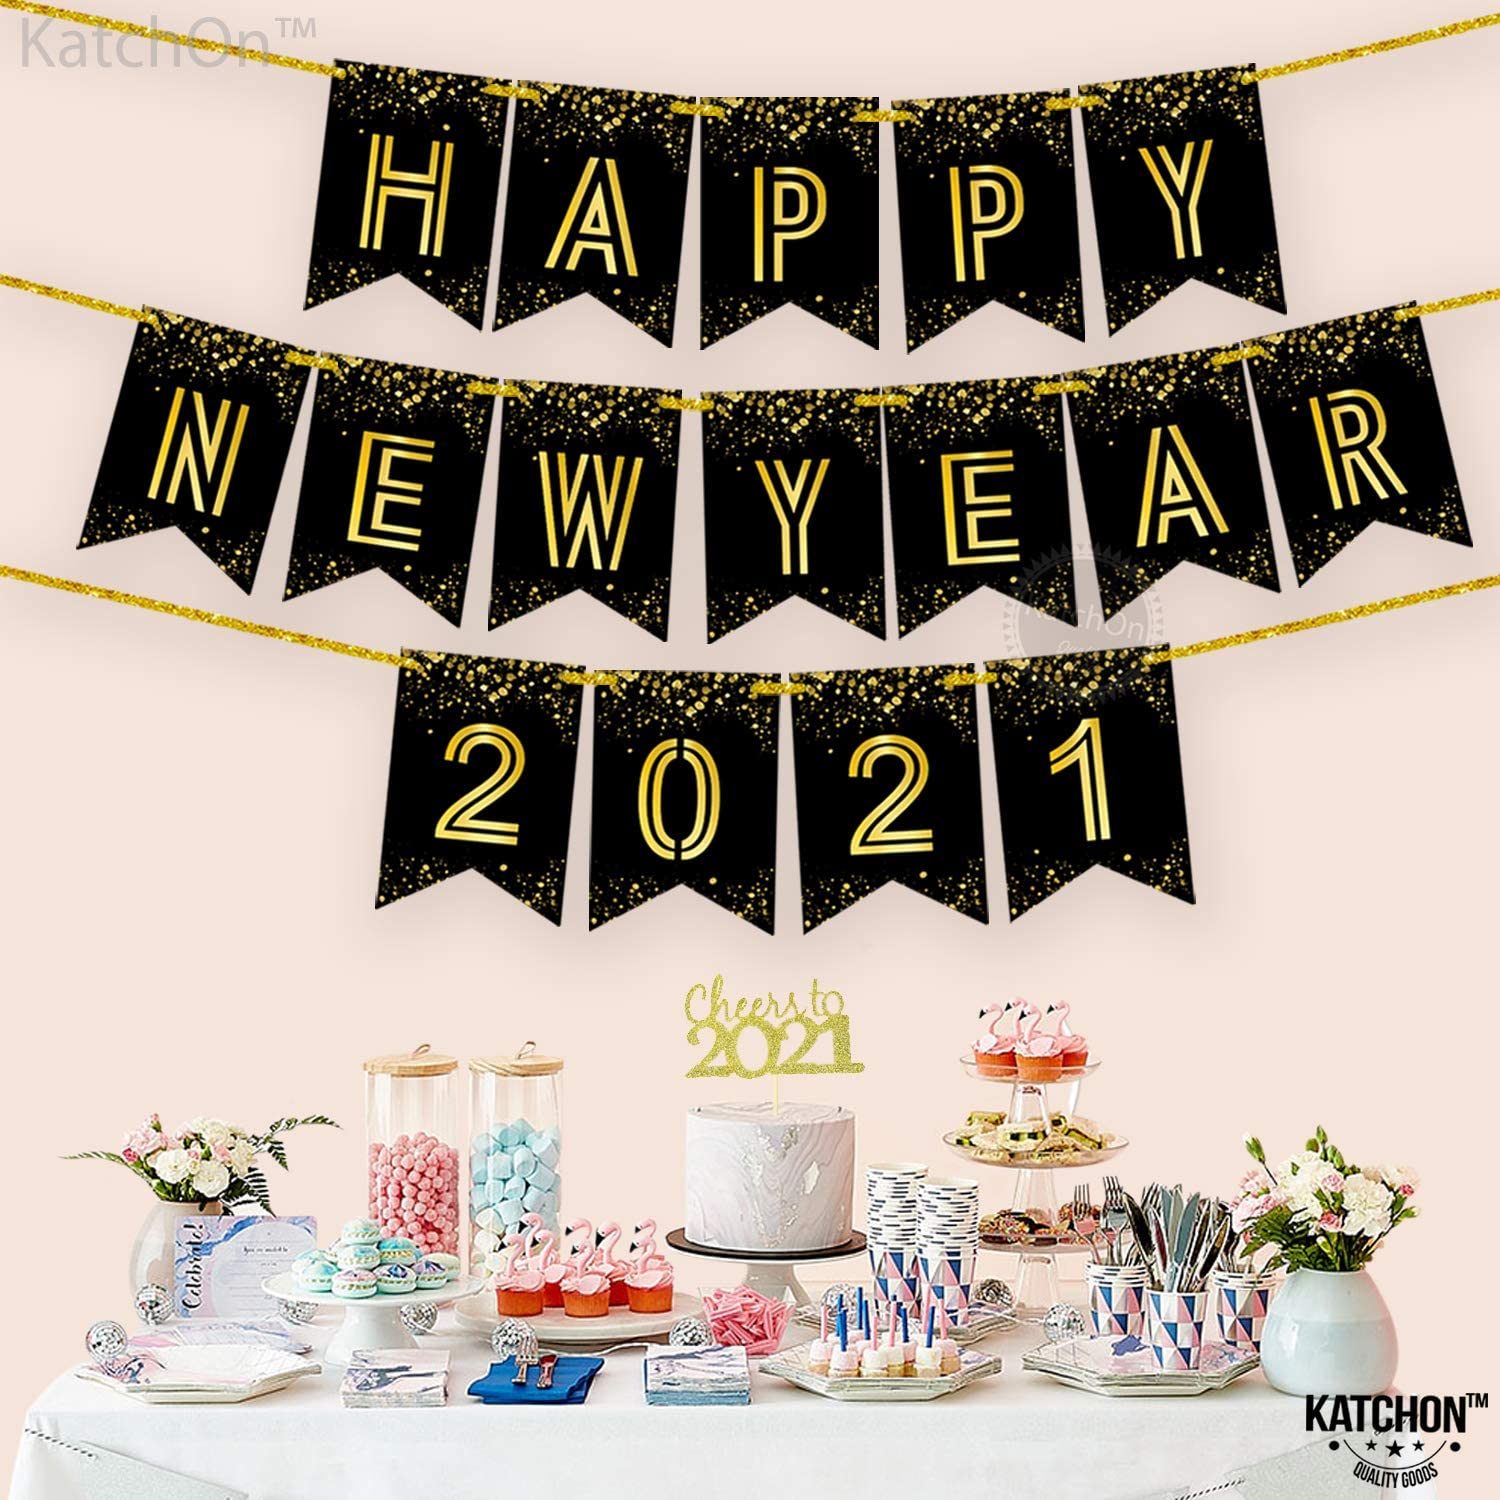 Large Happy New Year Sign for Happy New Years Eve Decorations No DIY Required Black and Gold Backdrop Decor for New Years Eve Party Supplies 2021 Shiny Foil Printed Happy New Year Banner 2021